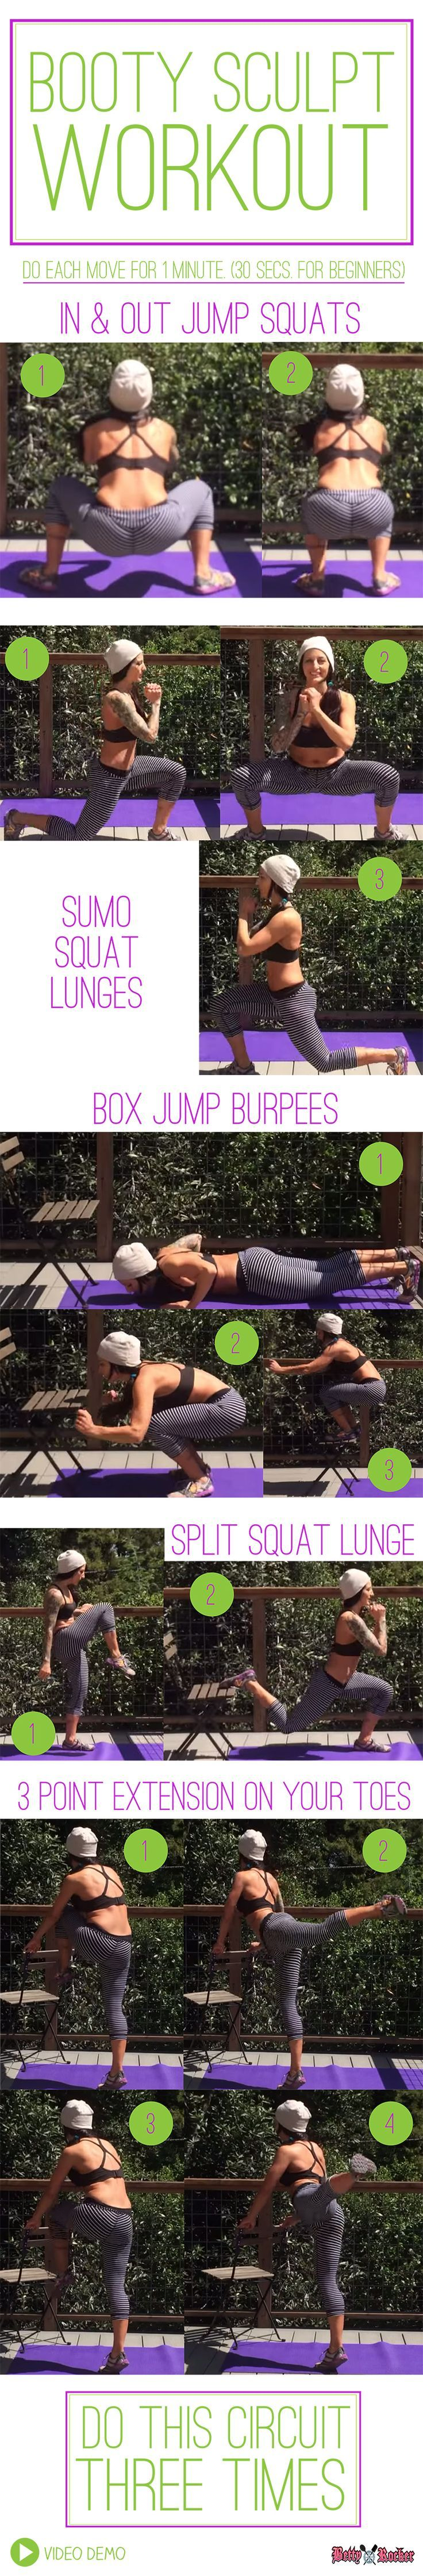 Do this circuit 3 times! Video Demo and complete form notes on the blog, just click the pin. Move 1: In and Out Jump Squats Move 2: Sumo Squat Lunges Move 3: Box Jump Burpees Move 4: Split Squat Lunge with Knee Move 5: 3 Point Extension on Your Toes